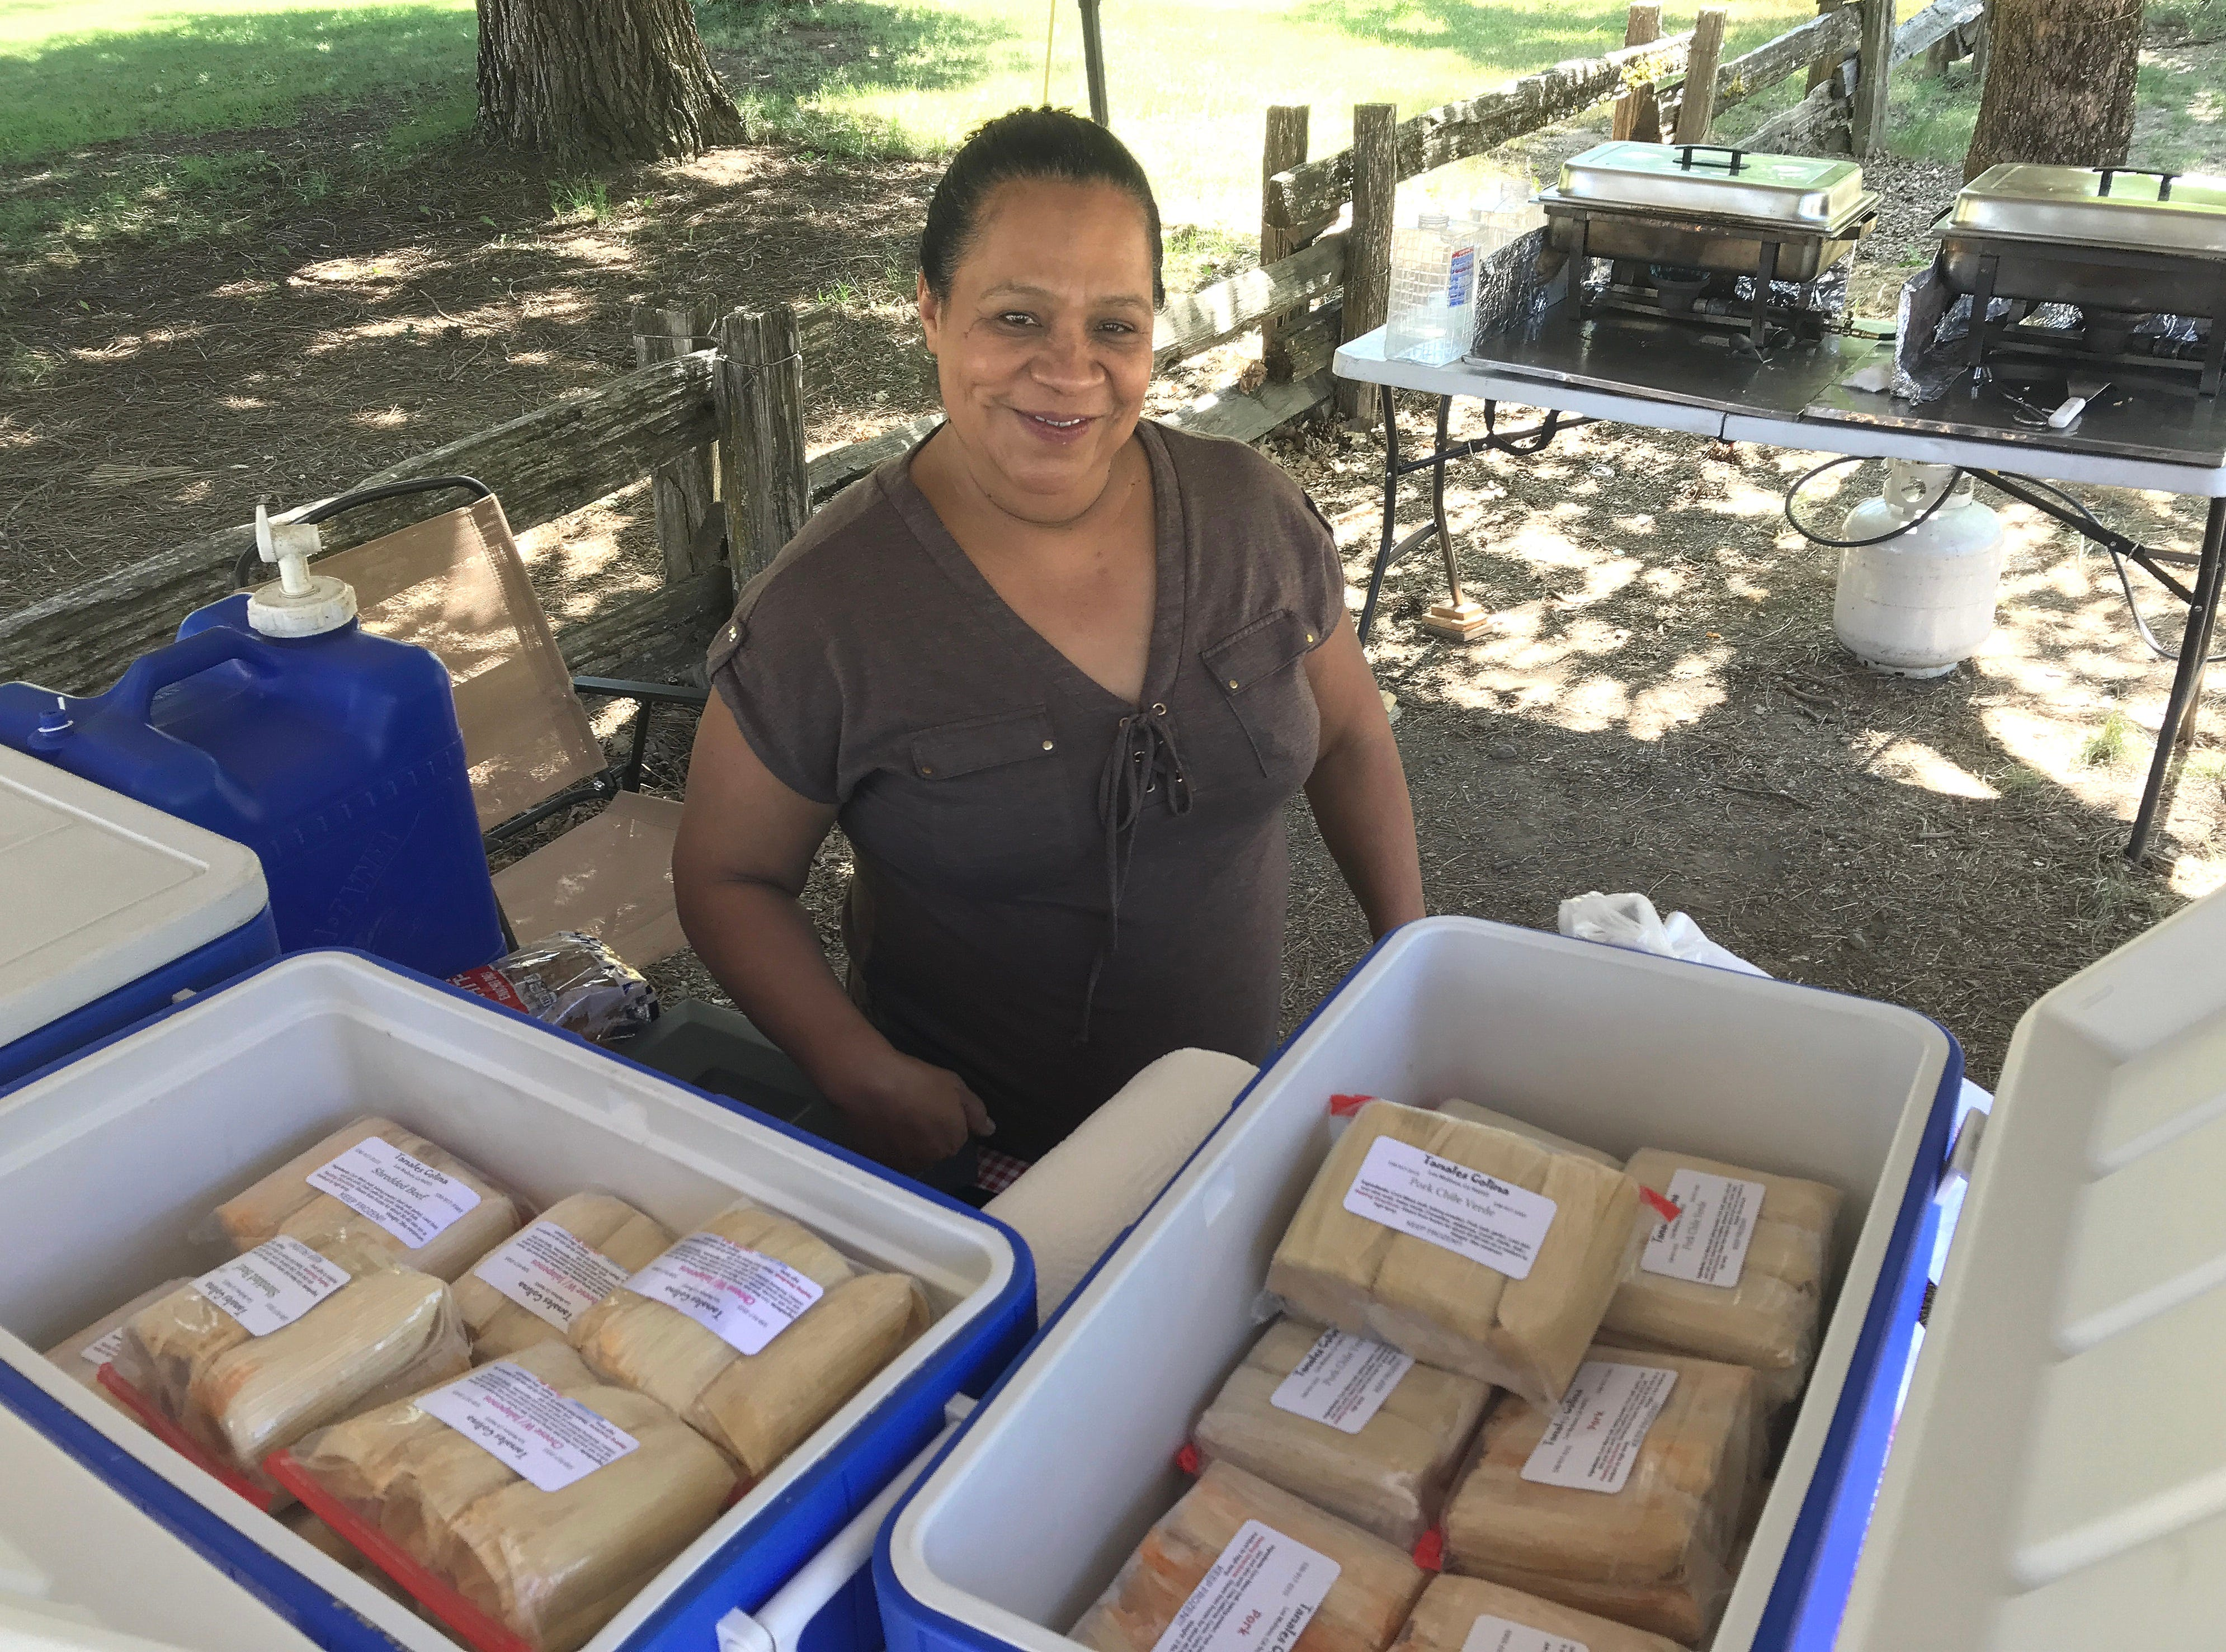 Cristina Contreras sells tamales from a roadside stand along Highway 3 in front of Hayfork Park on Tuesday, July 2, 2019.